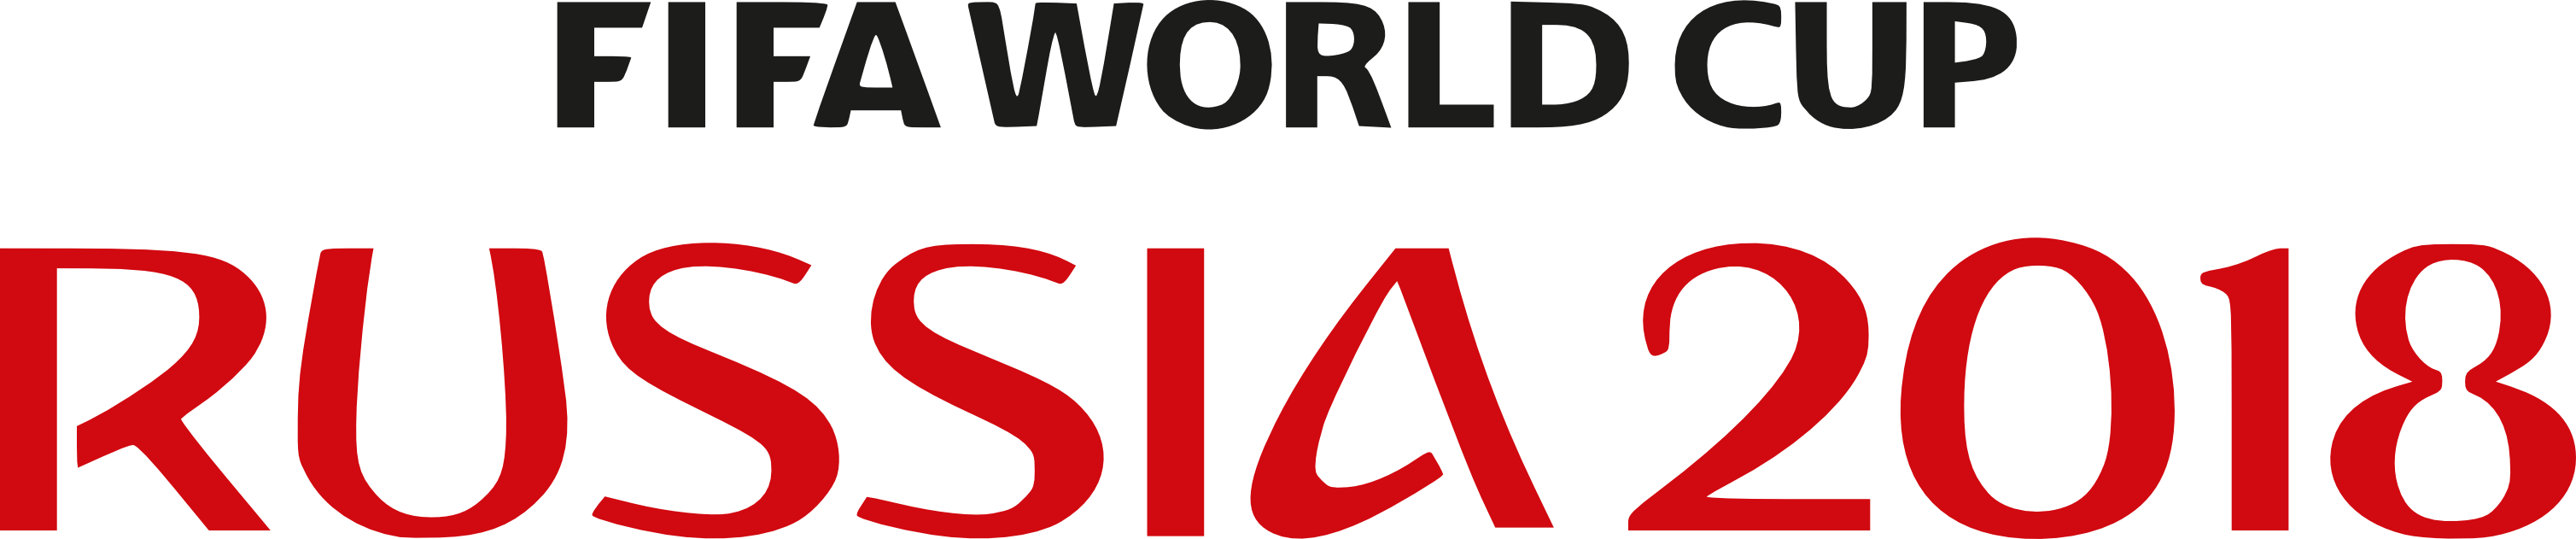 Fifa World Cup Russia 2018 Large Text Logo transparent PNG.